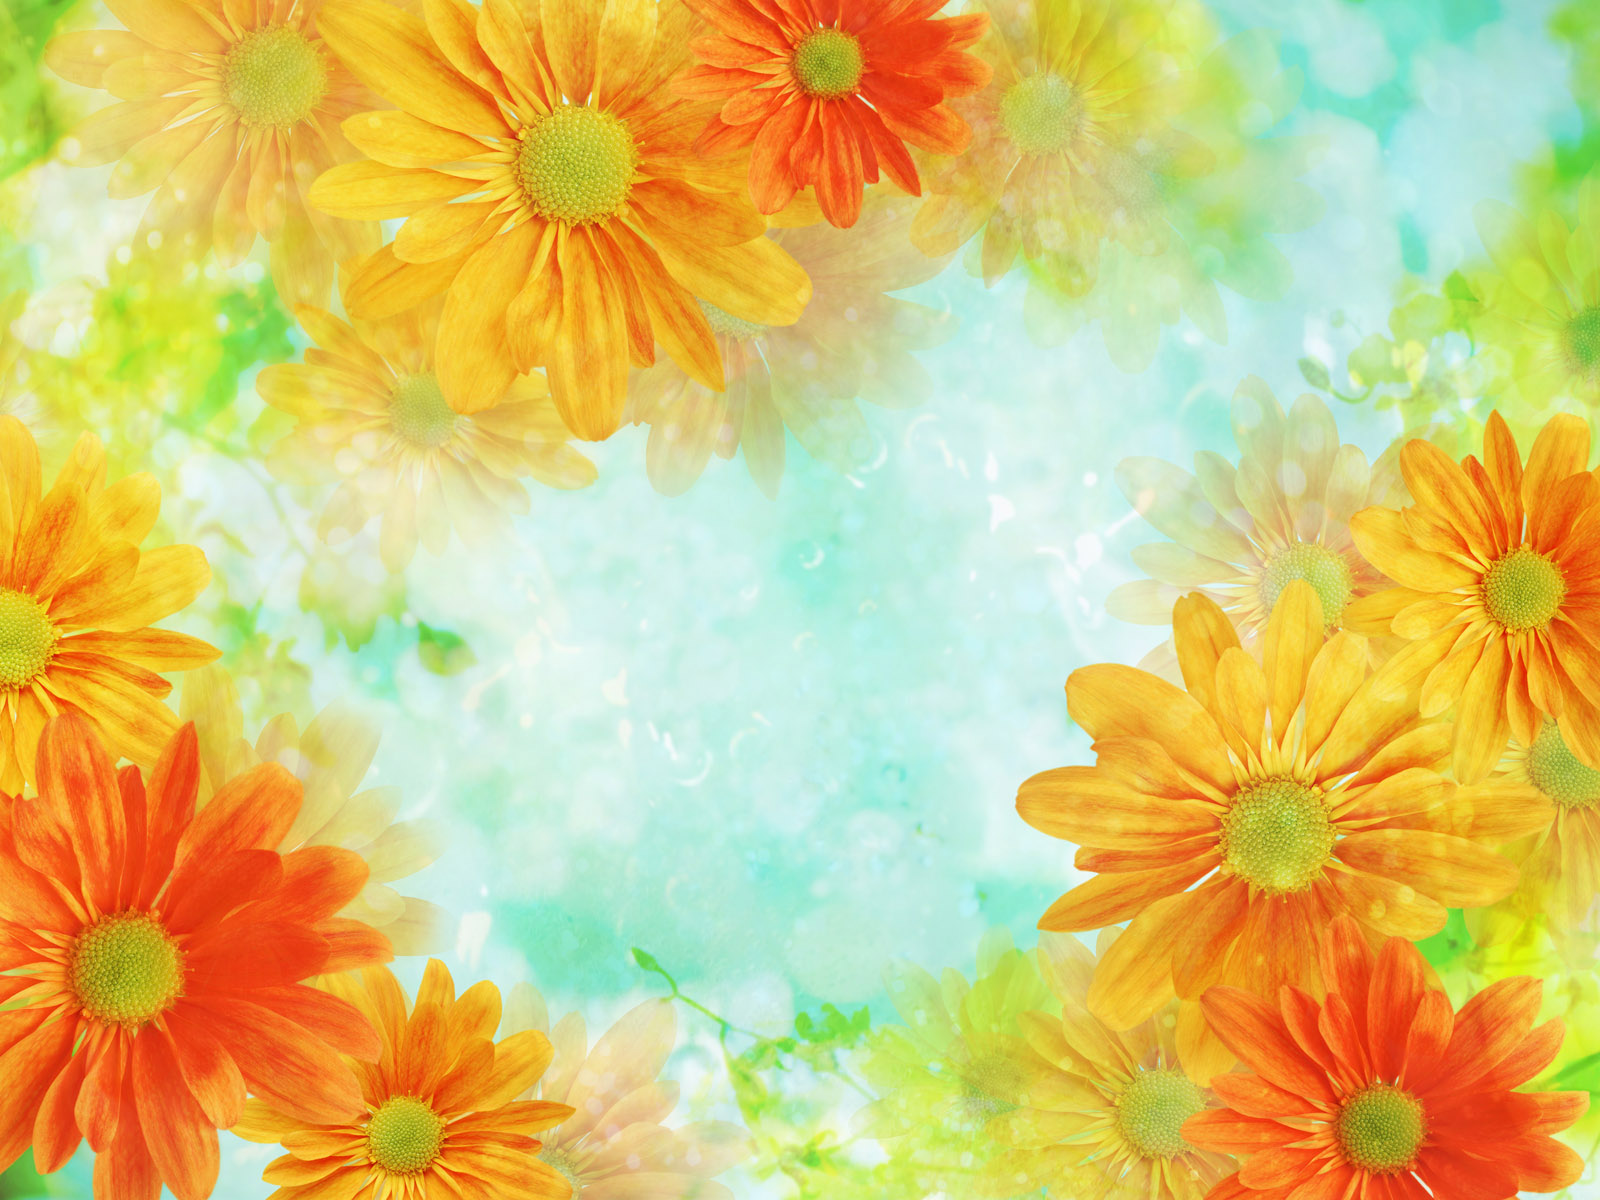 Stella faulkner daisy background - Floral background ...